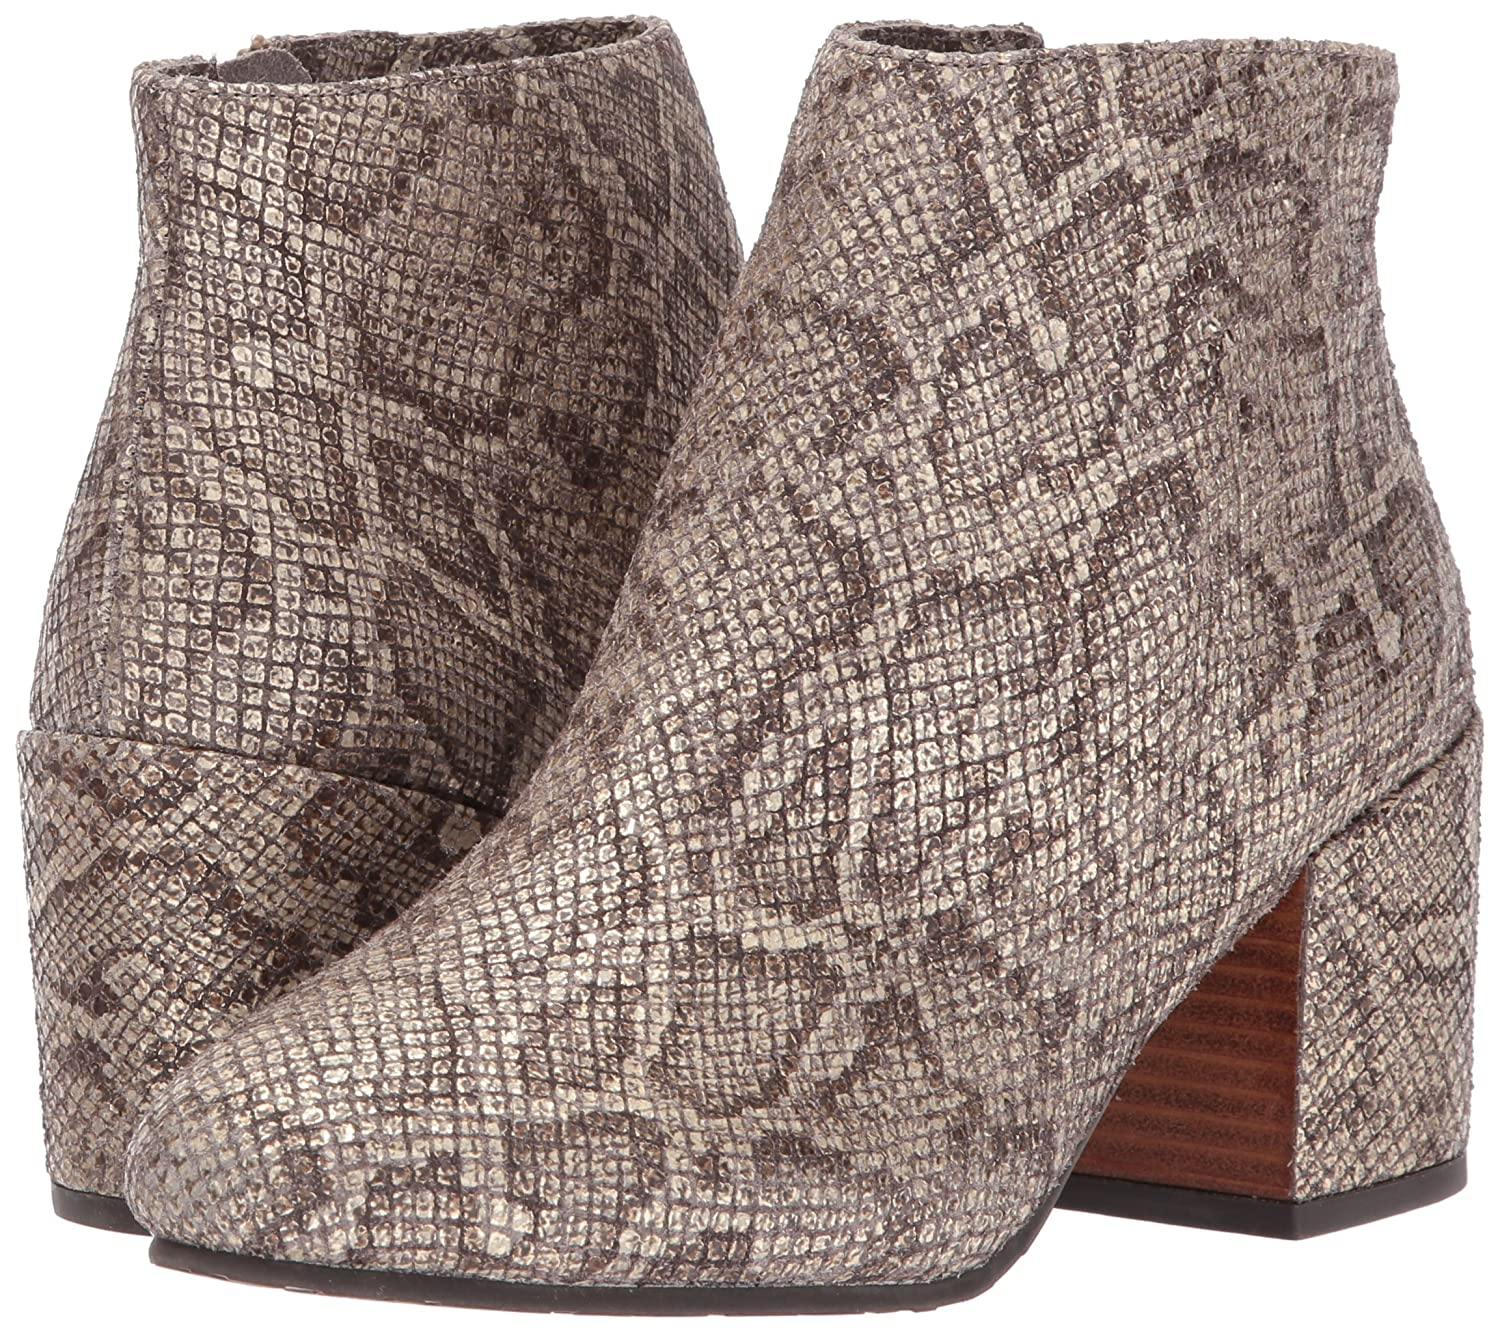 Gentle Souls by Kenneth Cole Women's Blaise Ankle Bootie with Side Zip, Covered Block Heel Emb Ankle Bootie B06XXLM534 5 B(M) US|Antique Gold